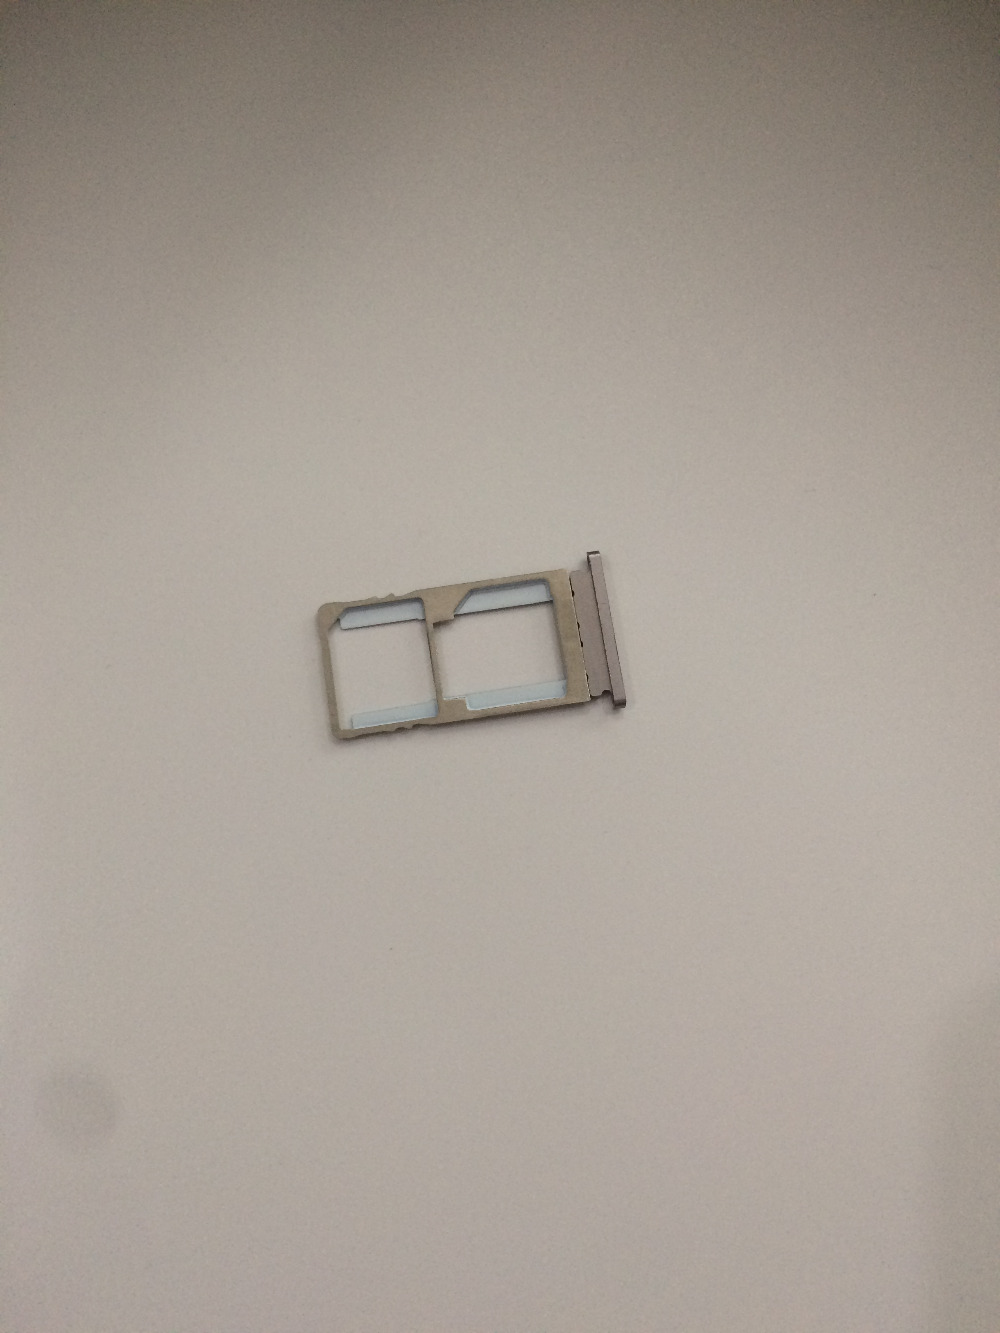 Used Replacement Sim Card Holder Tray Card Slot For Umi Touch X MT6735A 5.5 FHD 1920*1080 Free Shipping